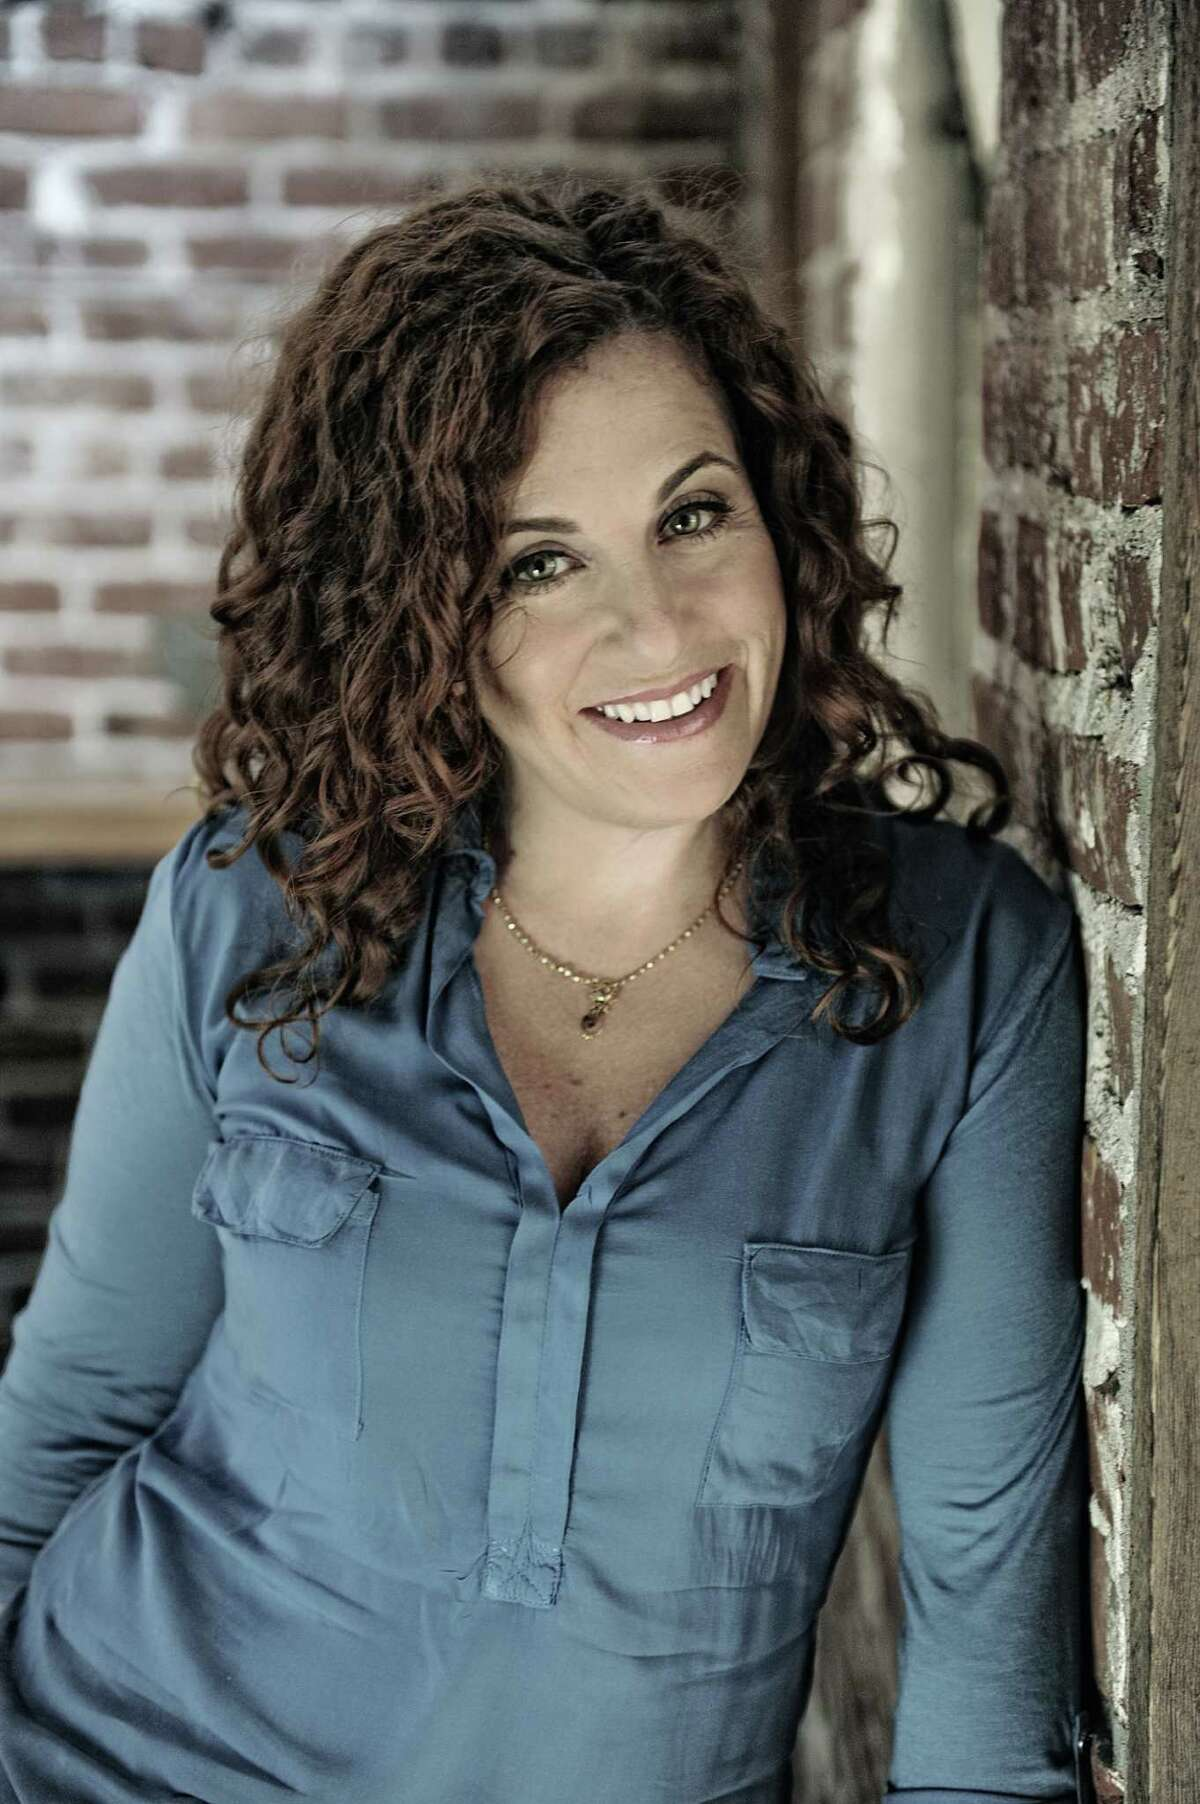 """Ayelet Waldman was inspired by the Hungarian Gold Train when it came to her latest book, """"Love and Treasure."""" She will share the story behind the story at a talk in Greenwich, Conn., on Oct. 30, 2014."""